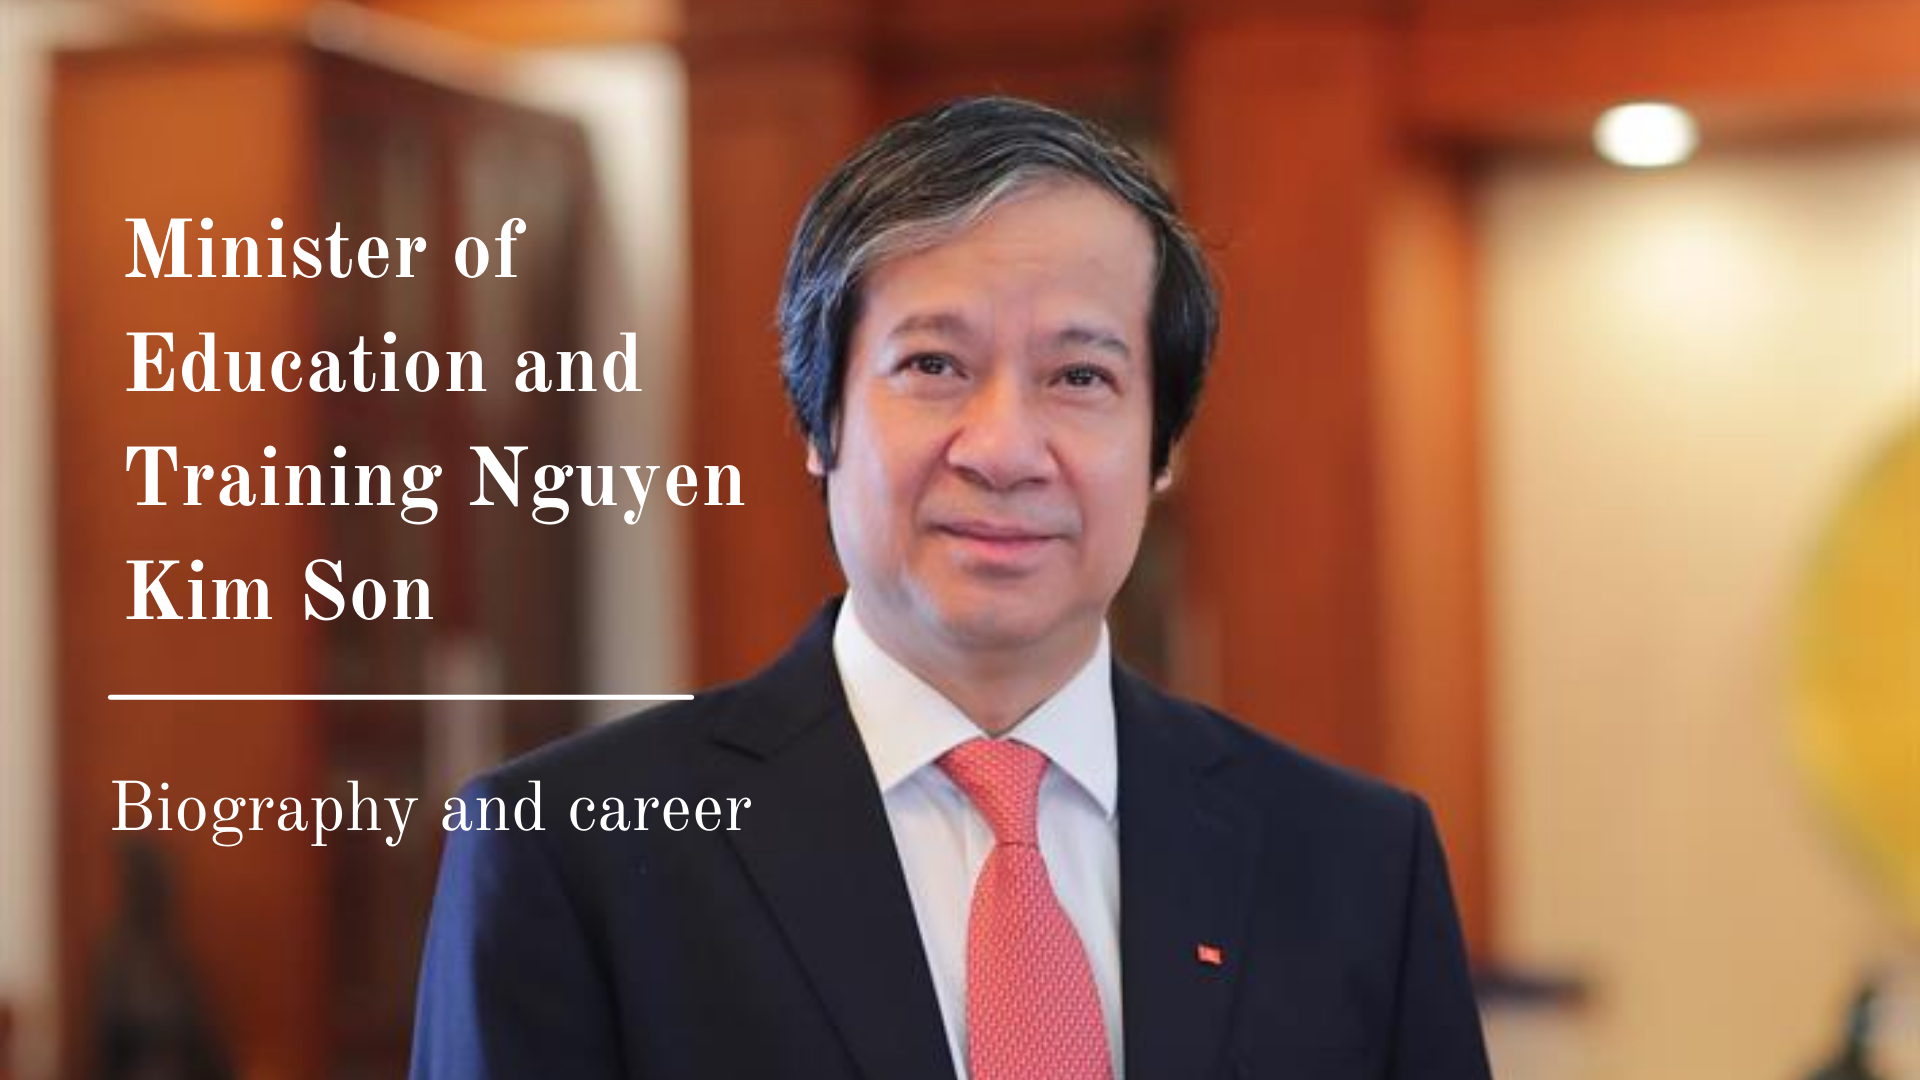 Biography of Minister of Education and Training Nguyen Kim Son: Positions and Working History